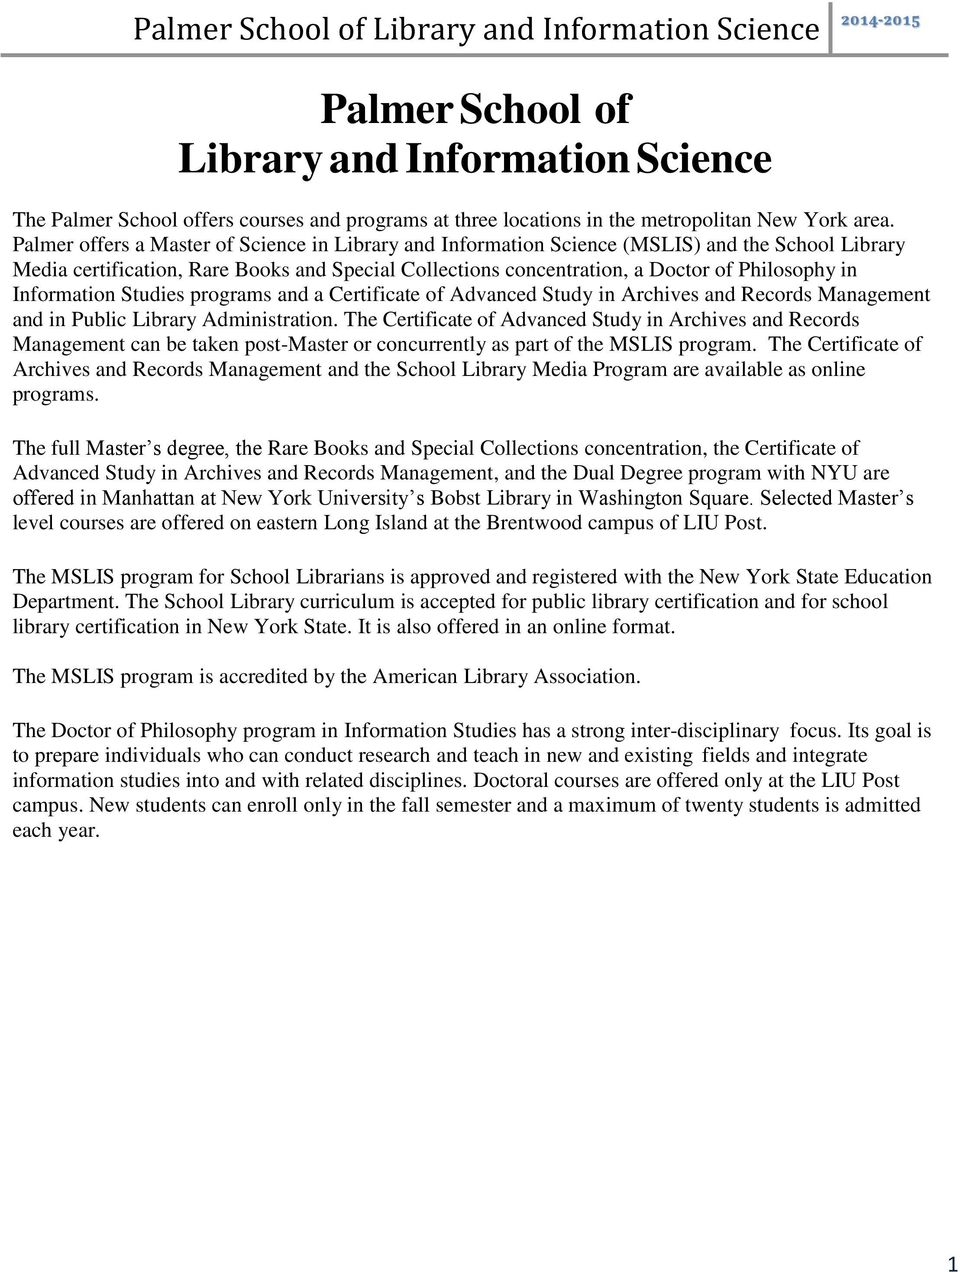 Palmer School Of Library And Information Science Pdf